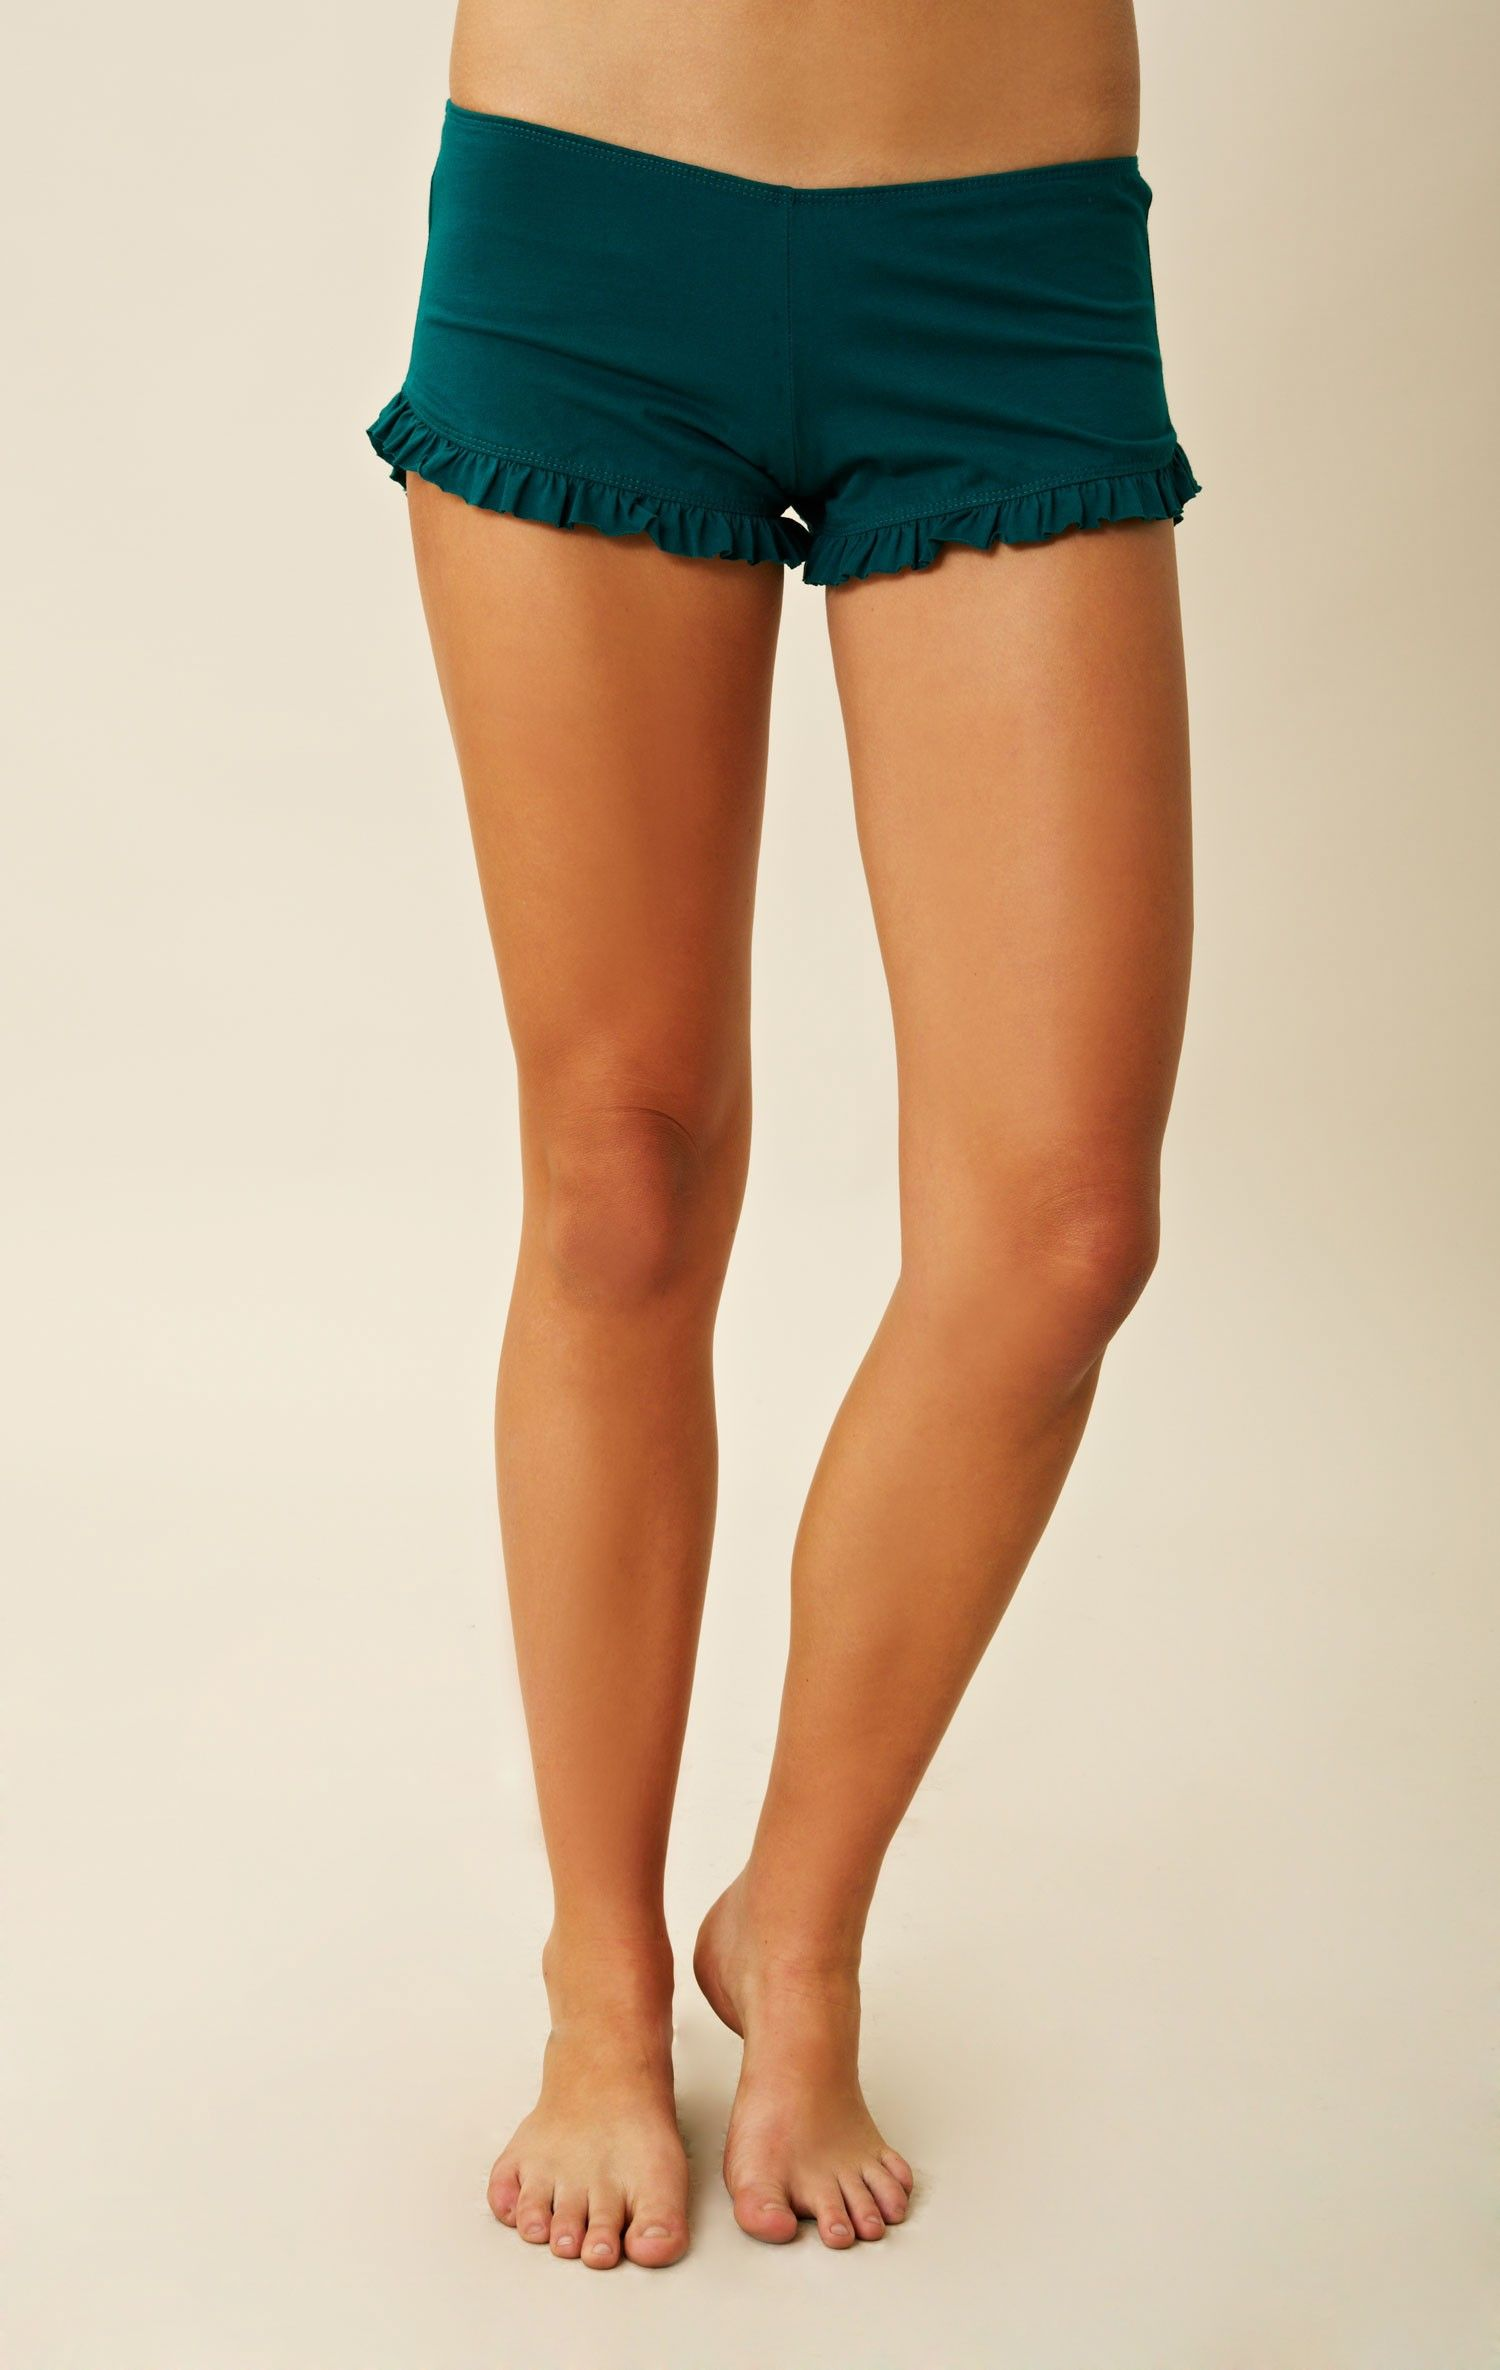 Indah Thyme Ruffle Shorts Review Buy Now